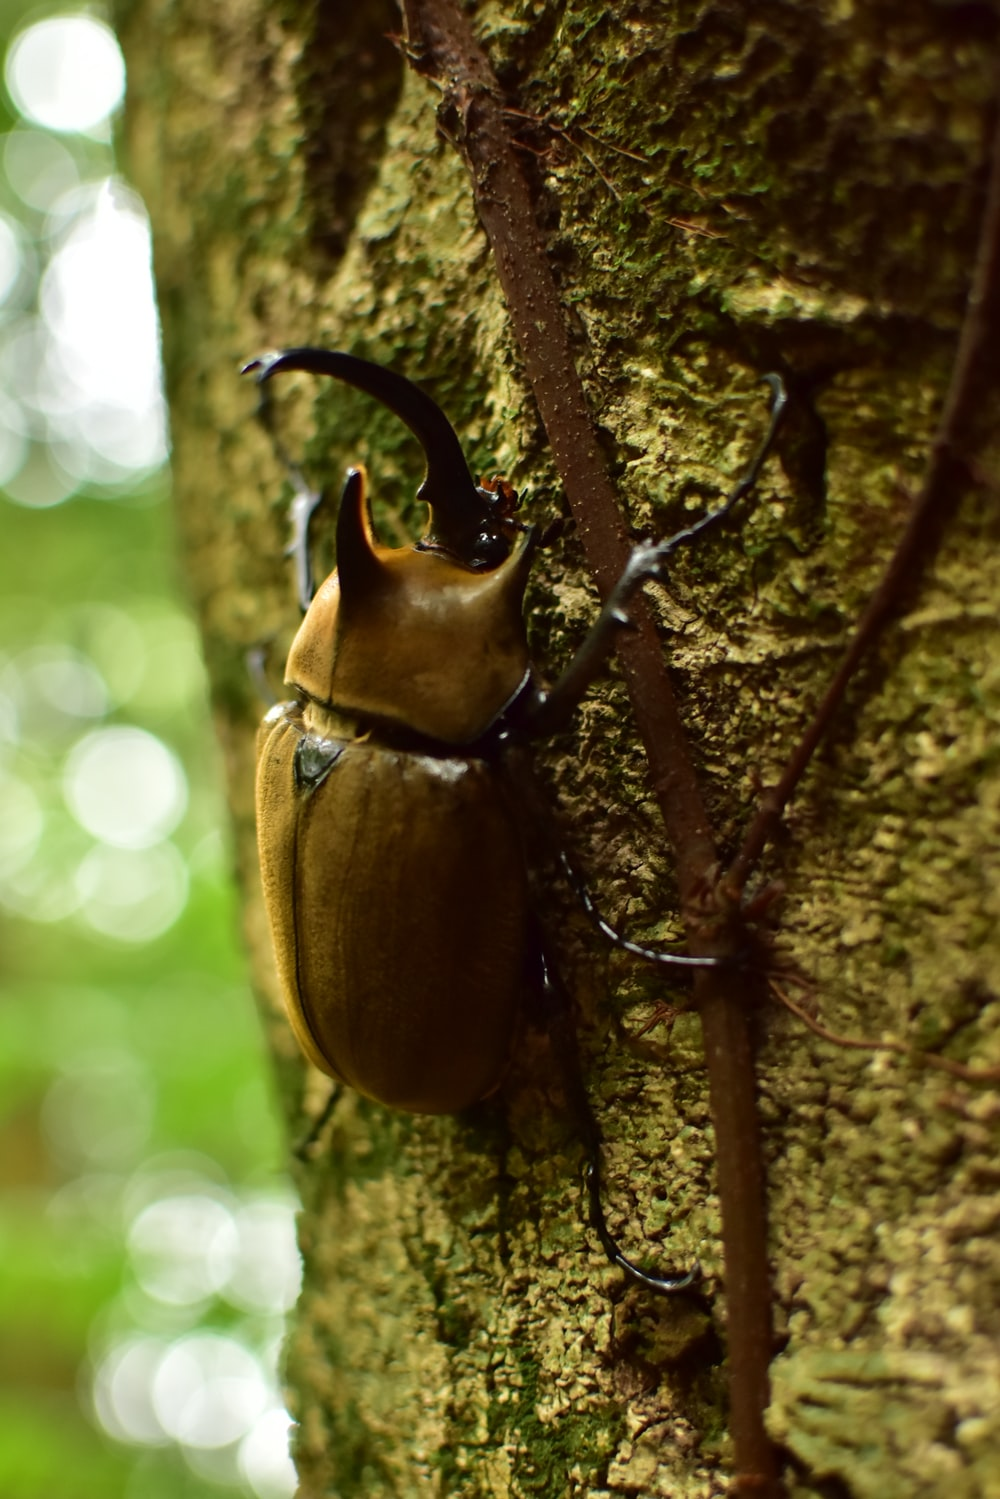 brown and black beetle on brown tree branch during daytime